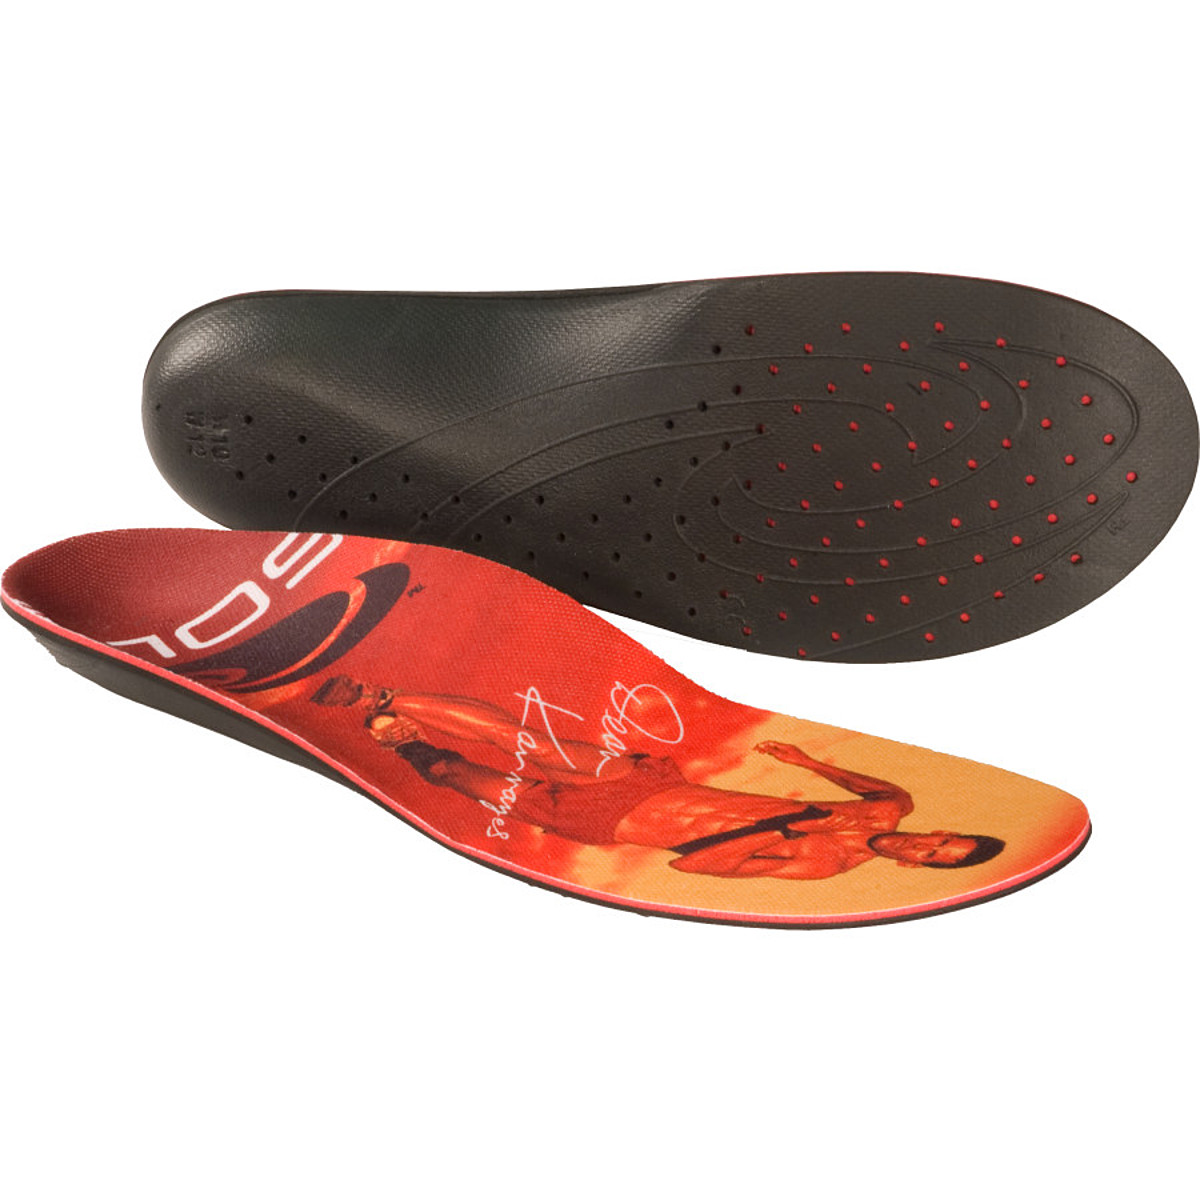 photo: Sole Performance Medium (Dean Karnazes) Footbed insole